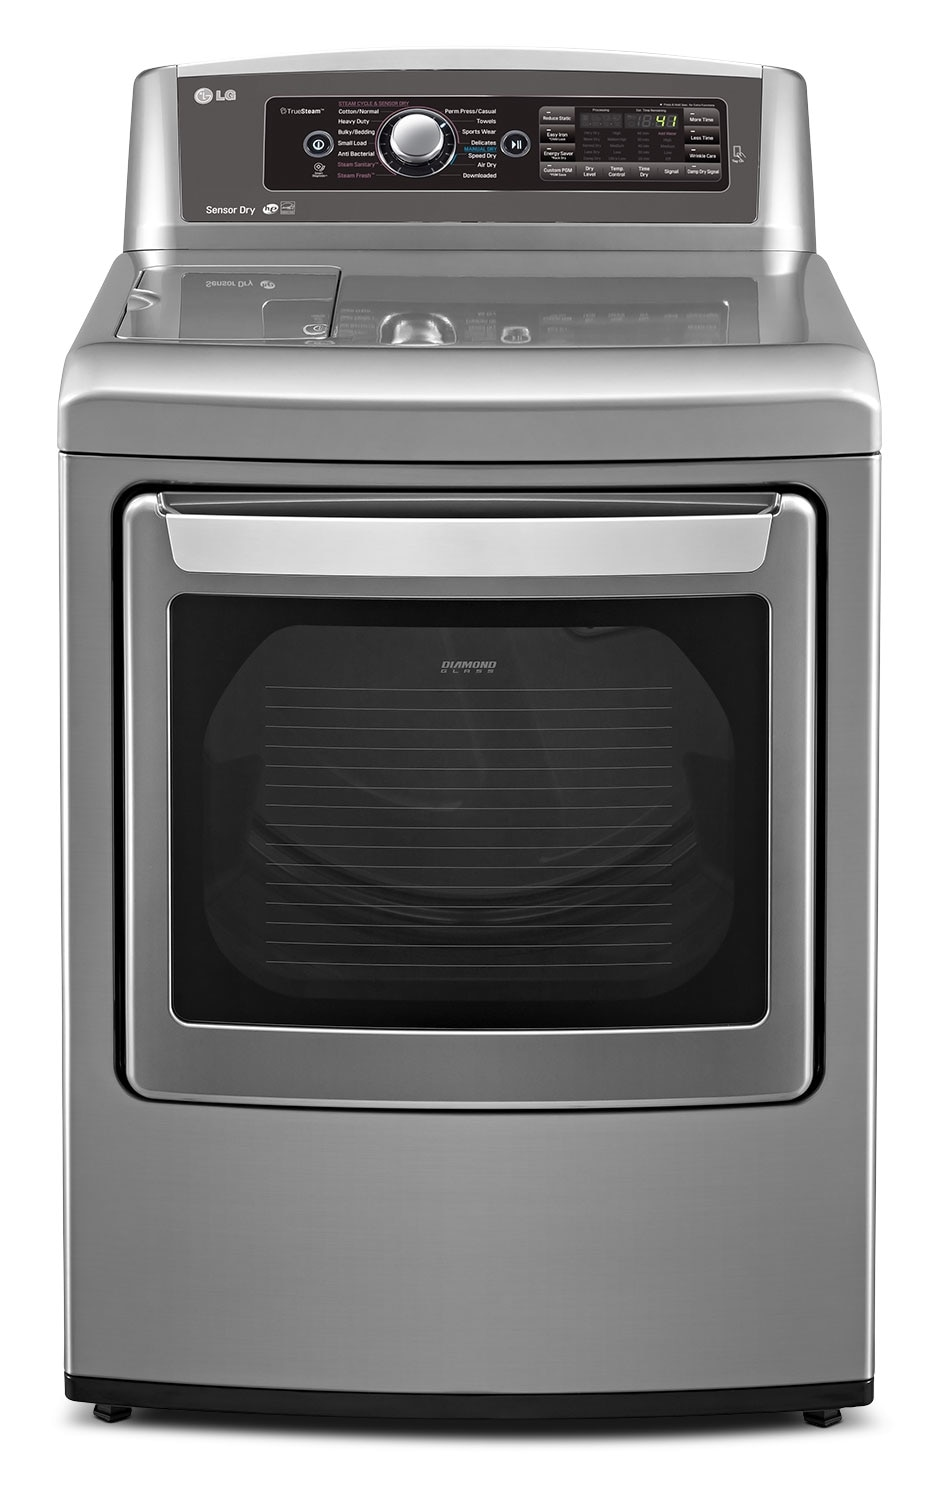 Washers and Dryers - LG 7.3 Cu. Ft. Ultra-Large Capacity Gas Steam Dryer - Grey